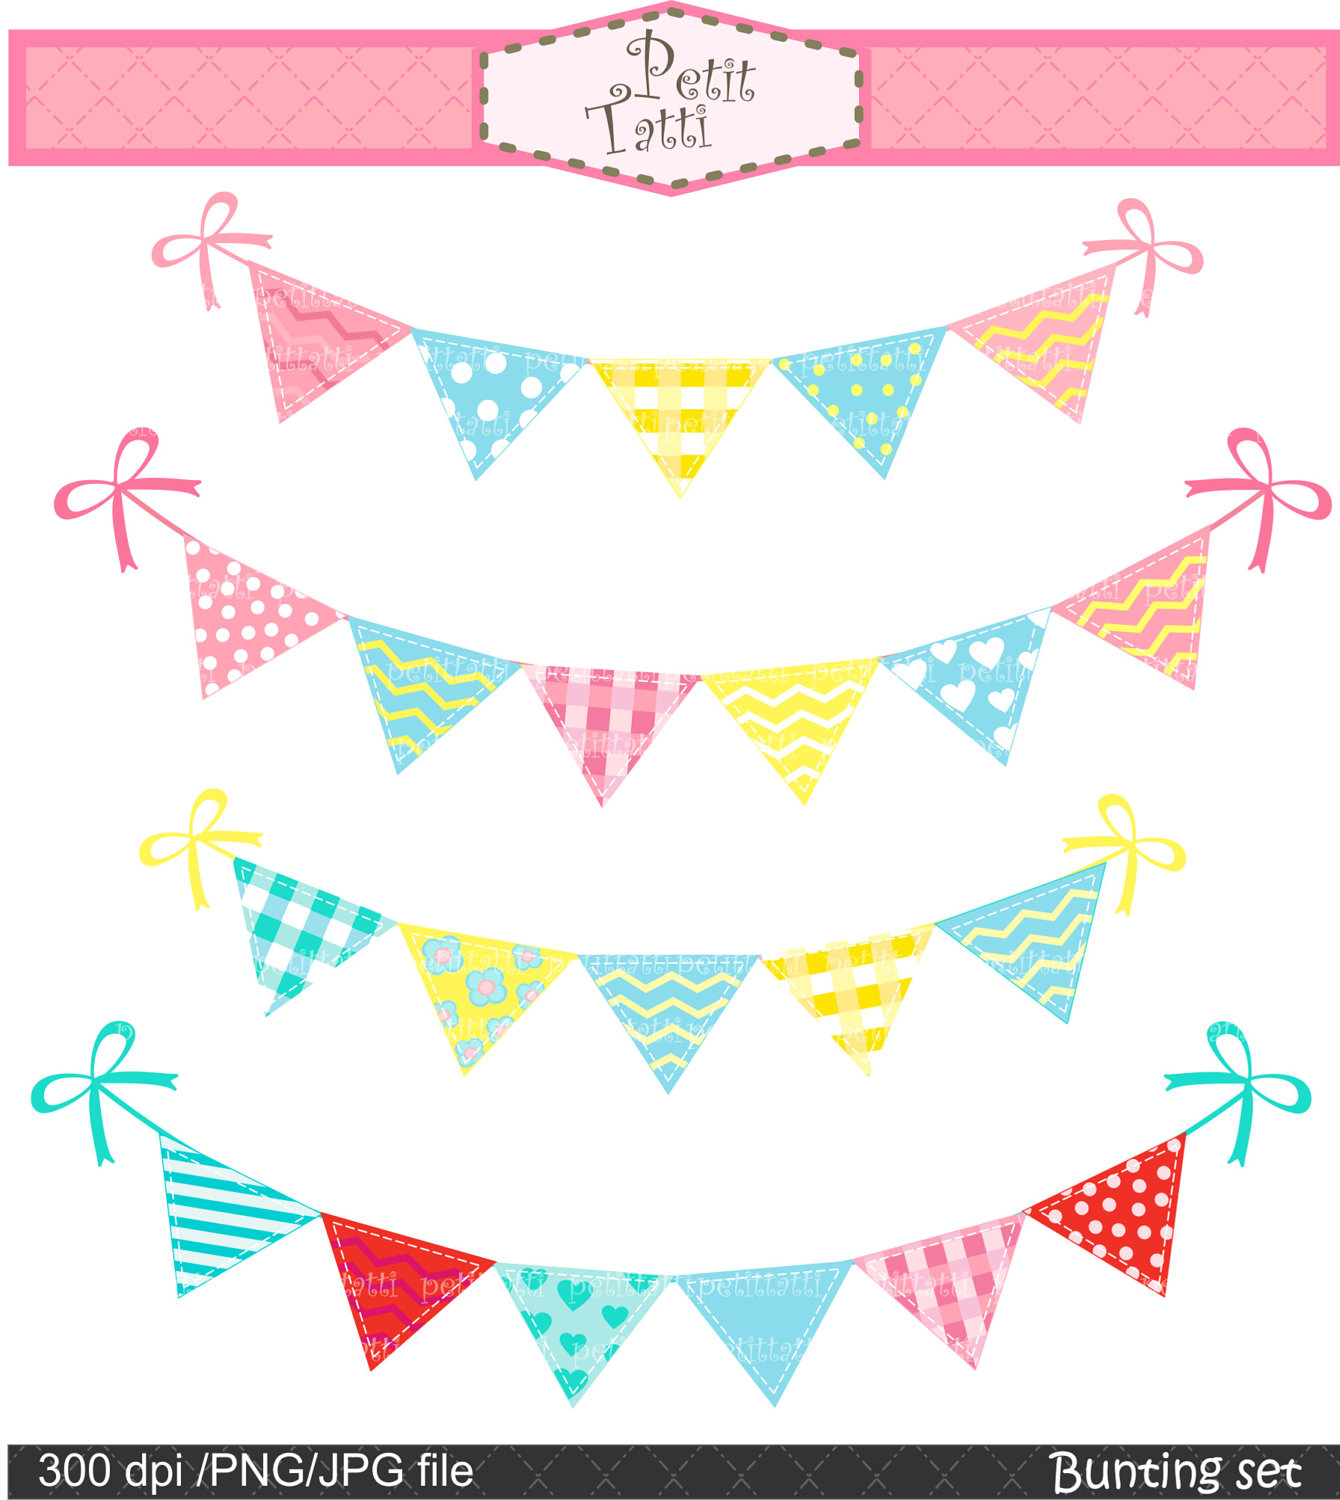 Bunting clipart #3, Download drawings